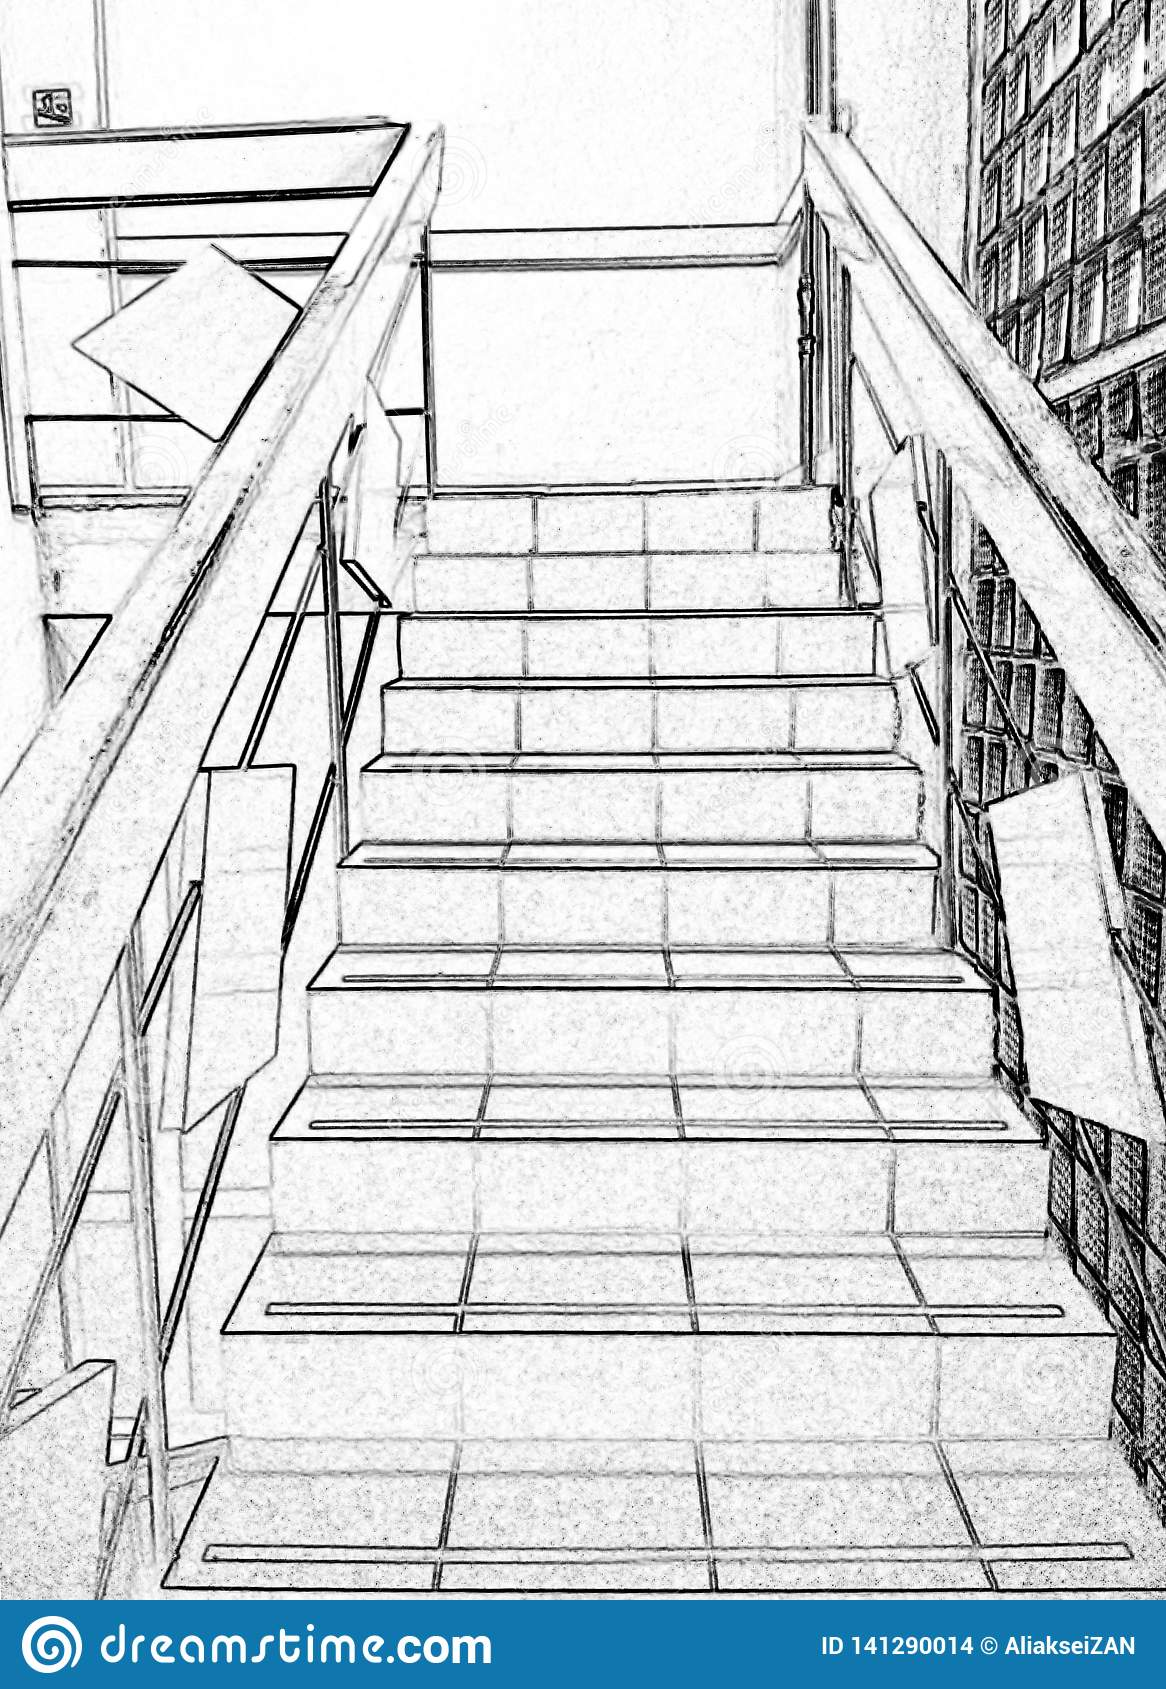 Stairs, climbing up, black and white, drawing, photo processing